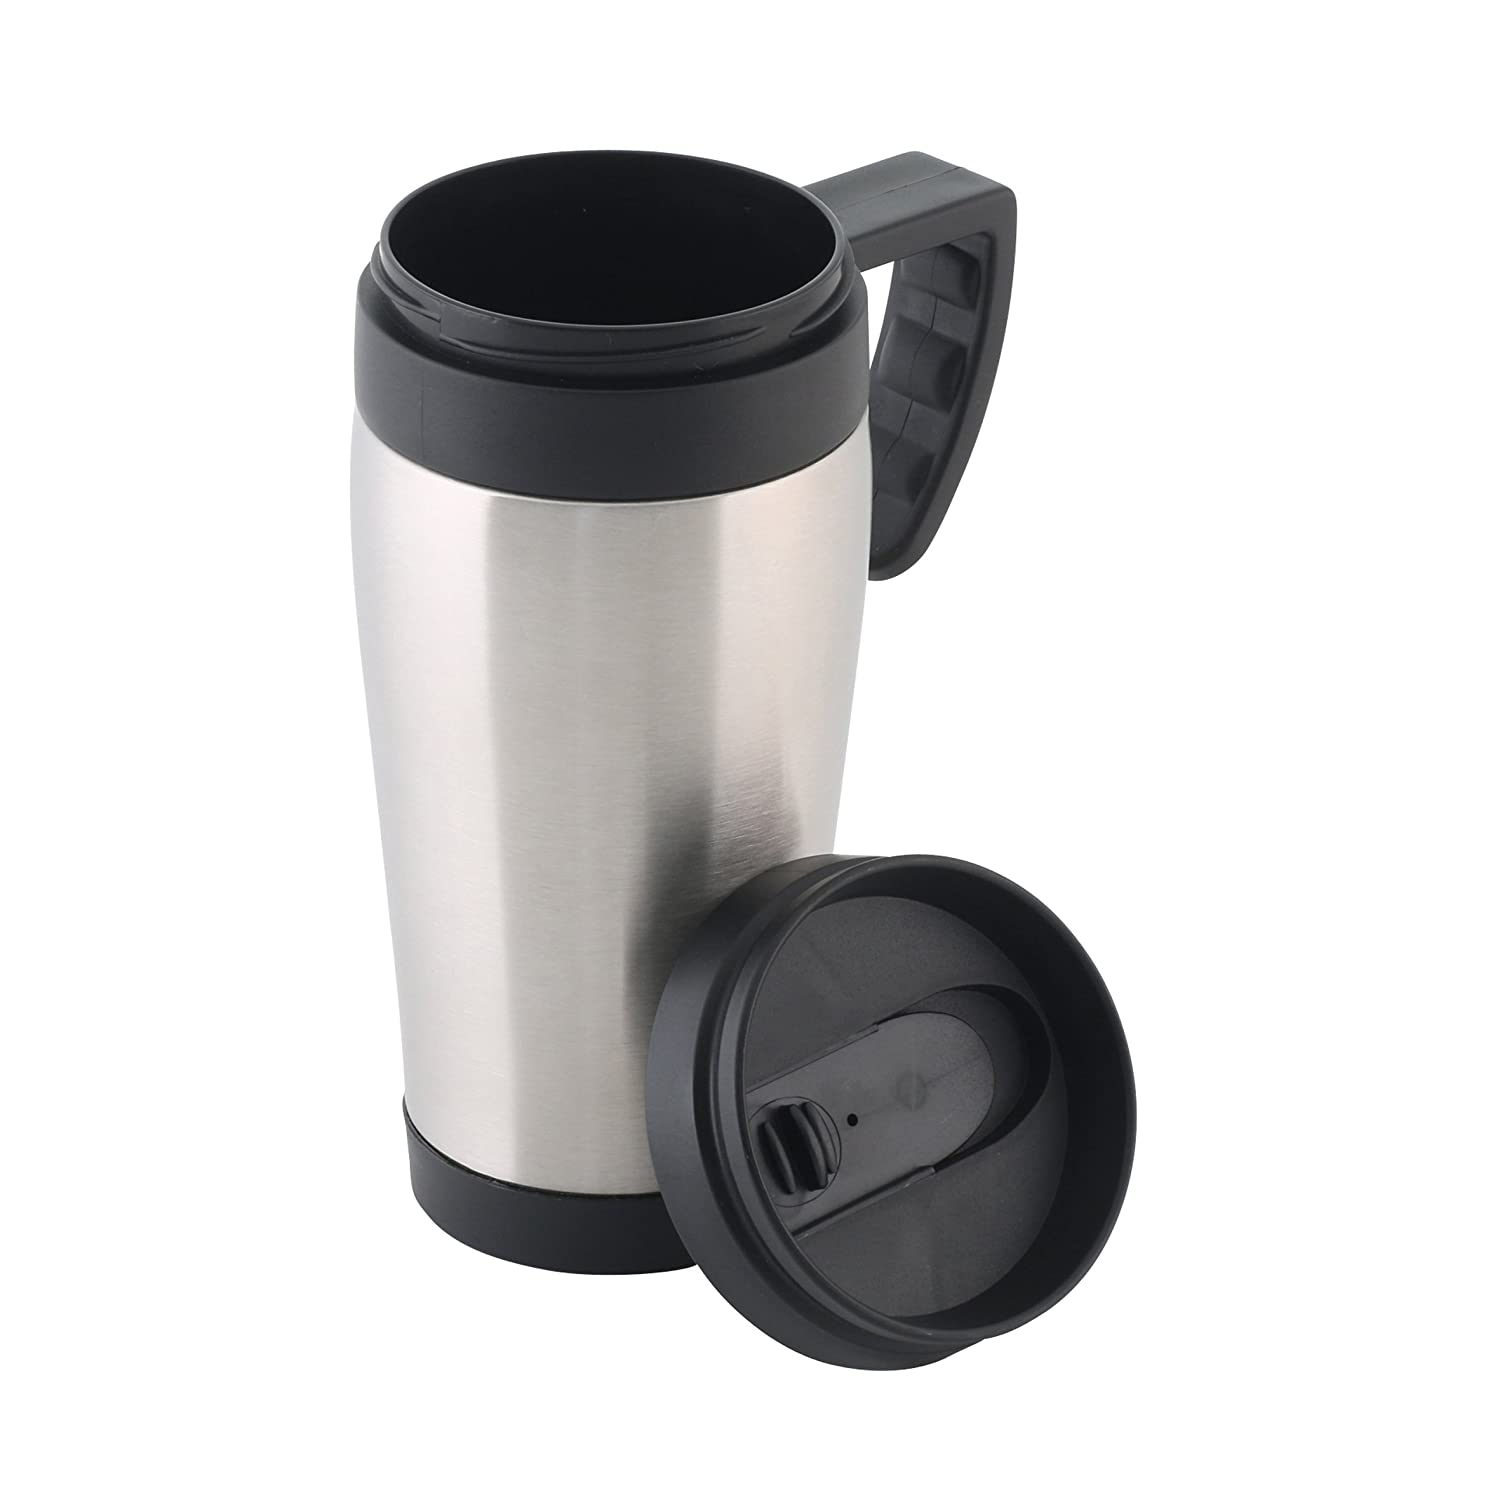 8813fc4e581 axentia Thermos Mug Stainless Steel - Travel Mug with Lid - Thermos Travel  Mug Black - Coffee Thermos Travel Mug for the Car - Home & Kitchen:  Amazon.co.uk: ...